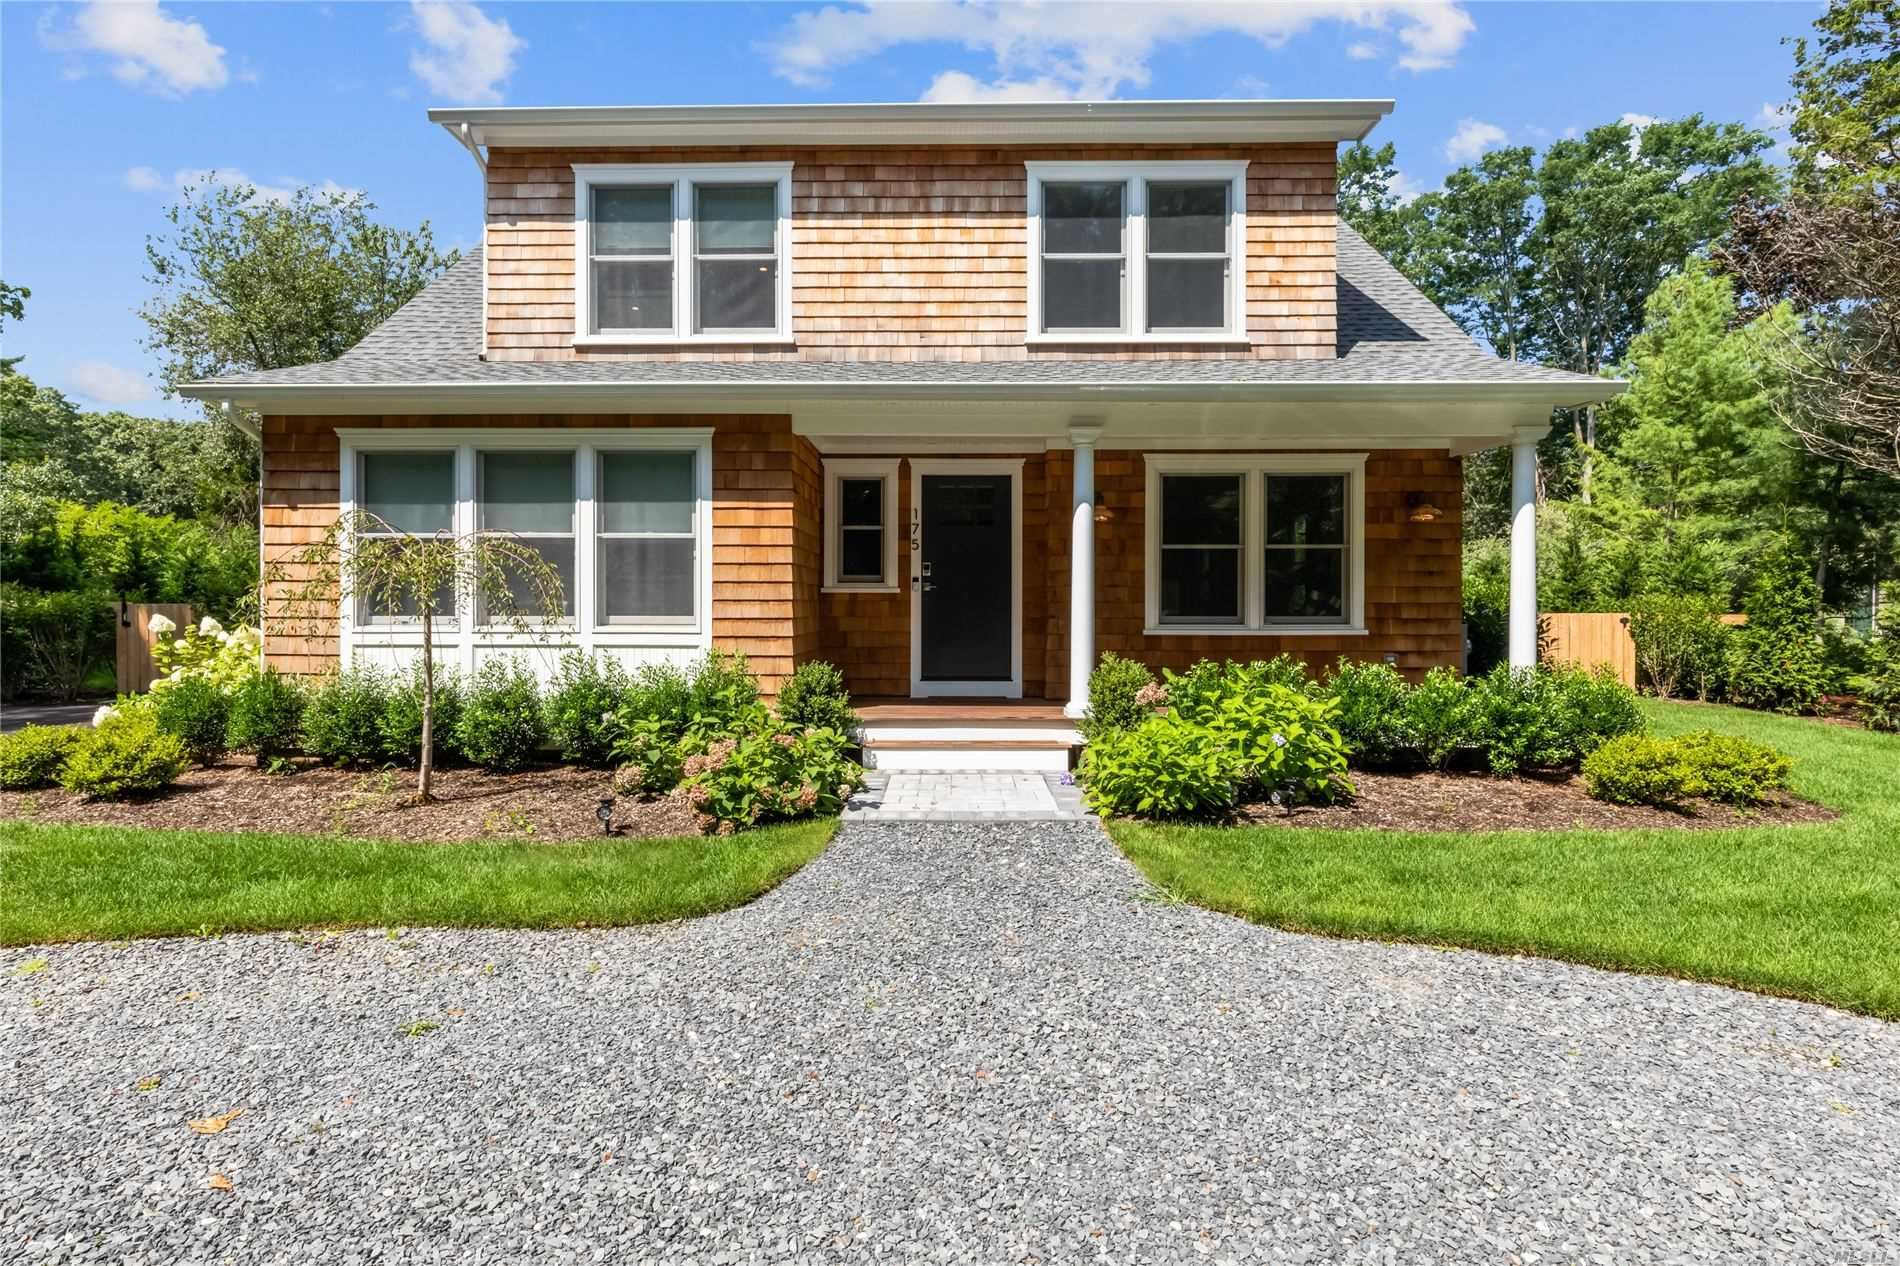 1680 Seawood Drive, Southold, NY 11971 - MLS#: 3212518